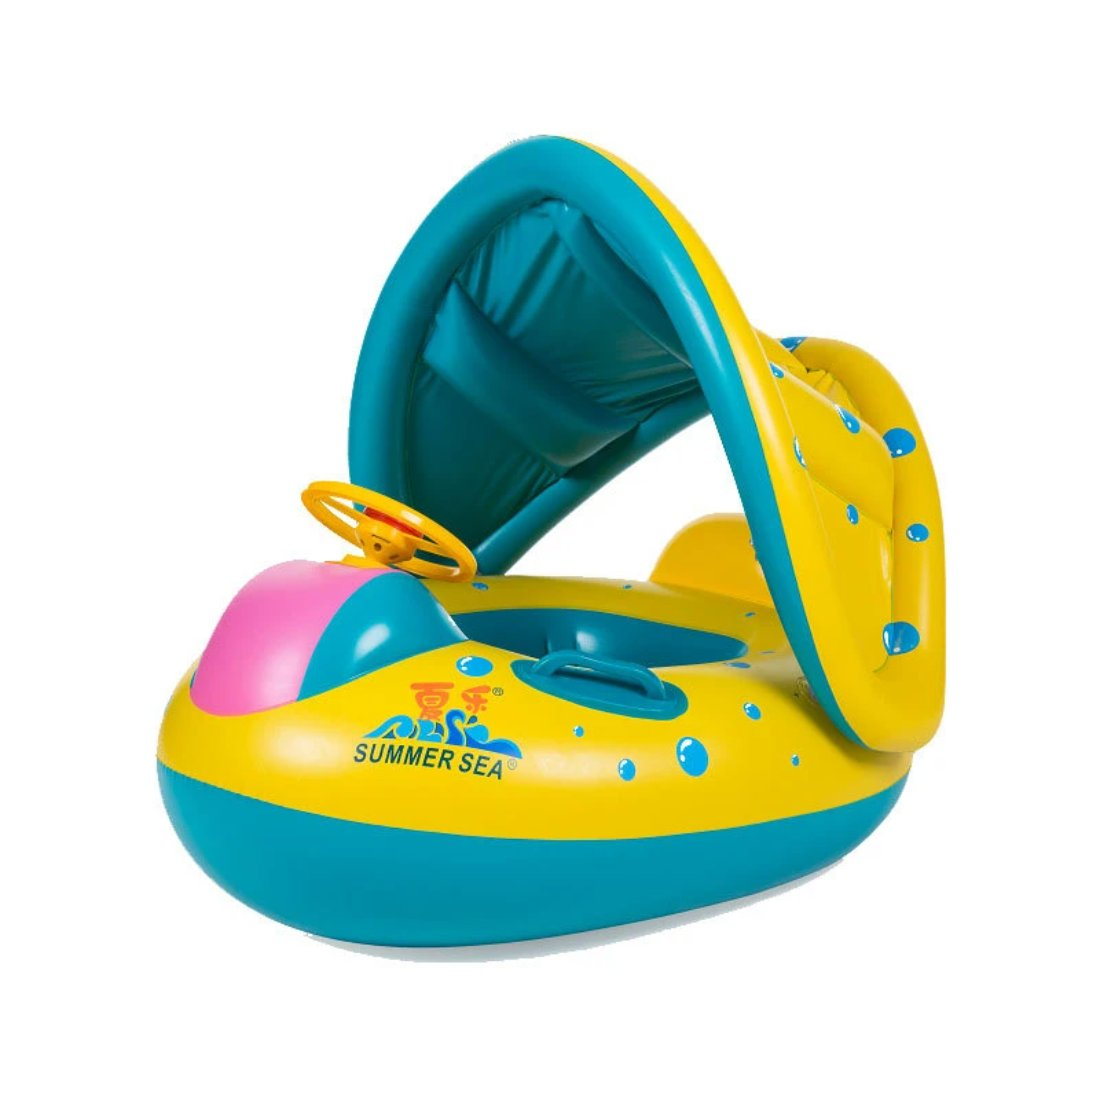 Infant inflatable swimmer